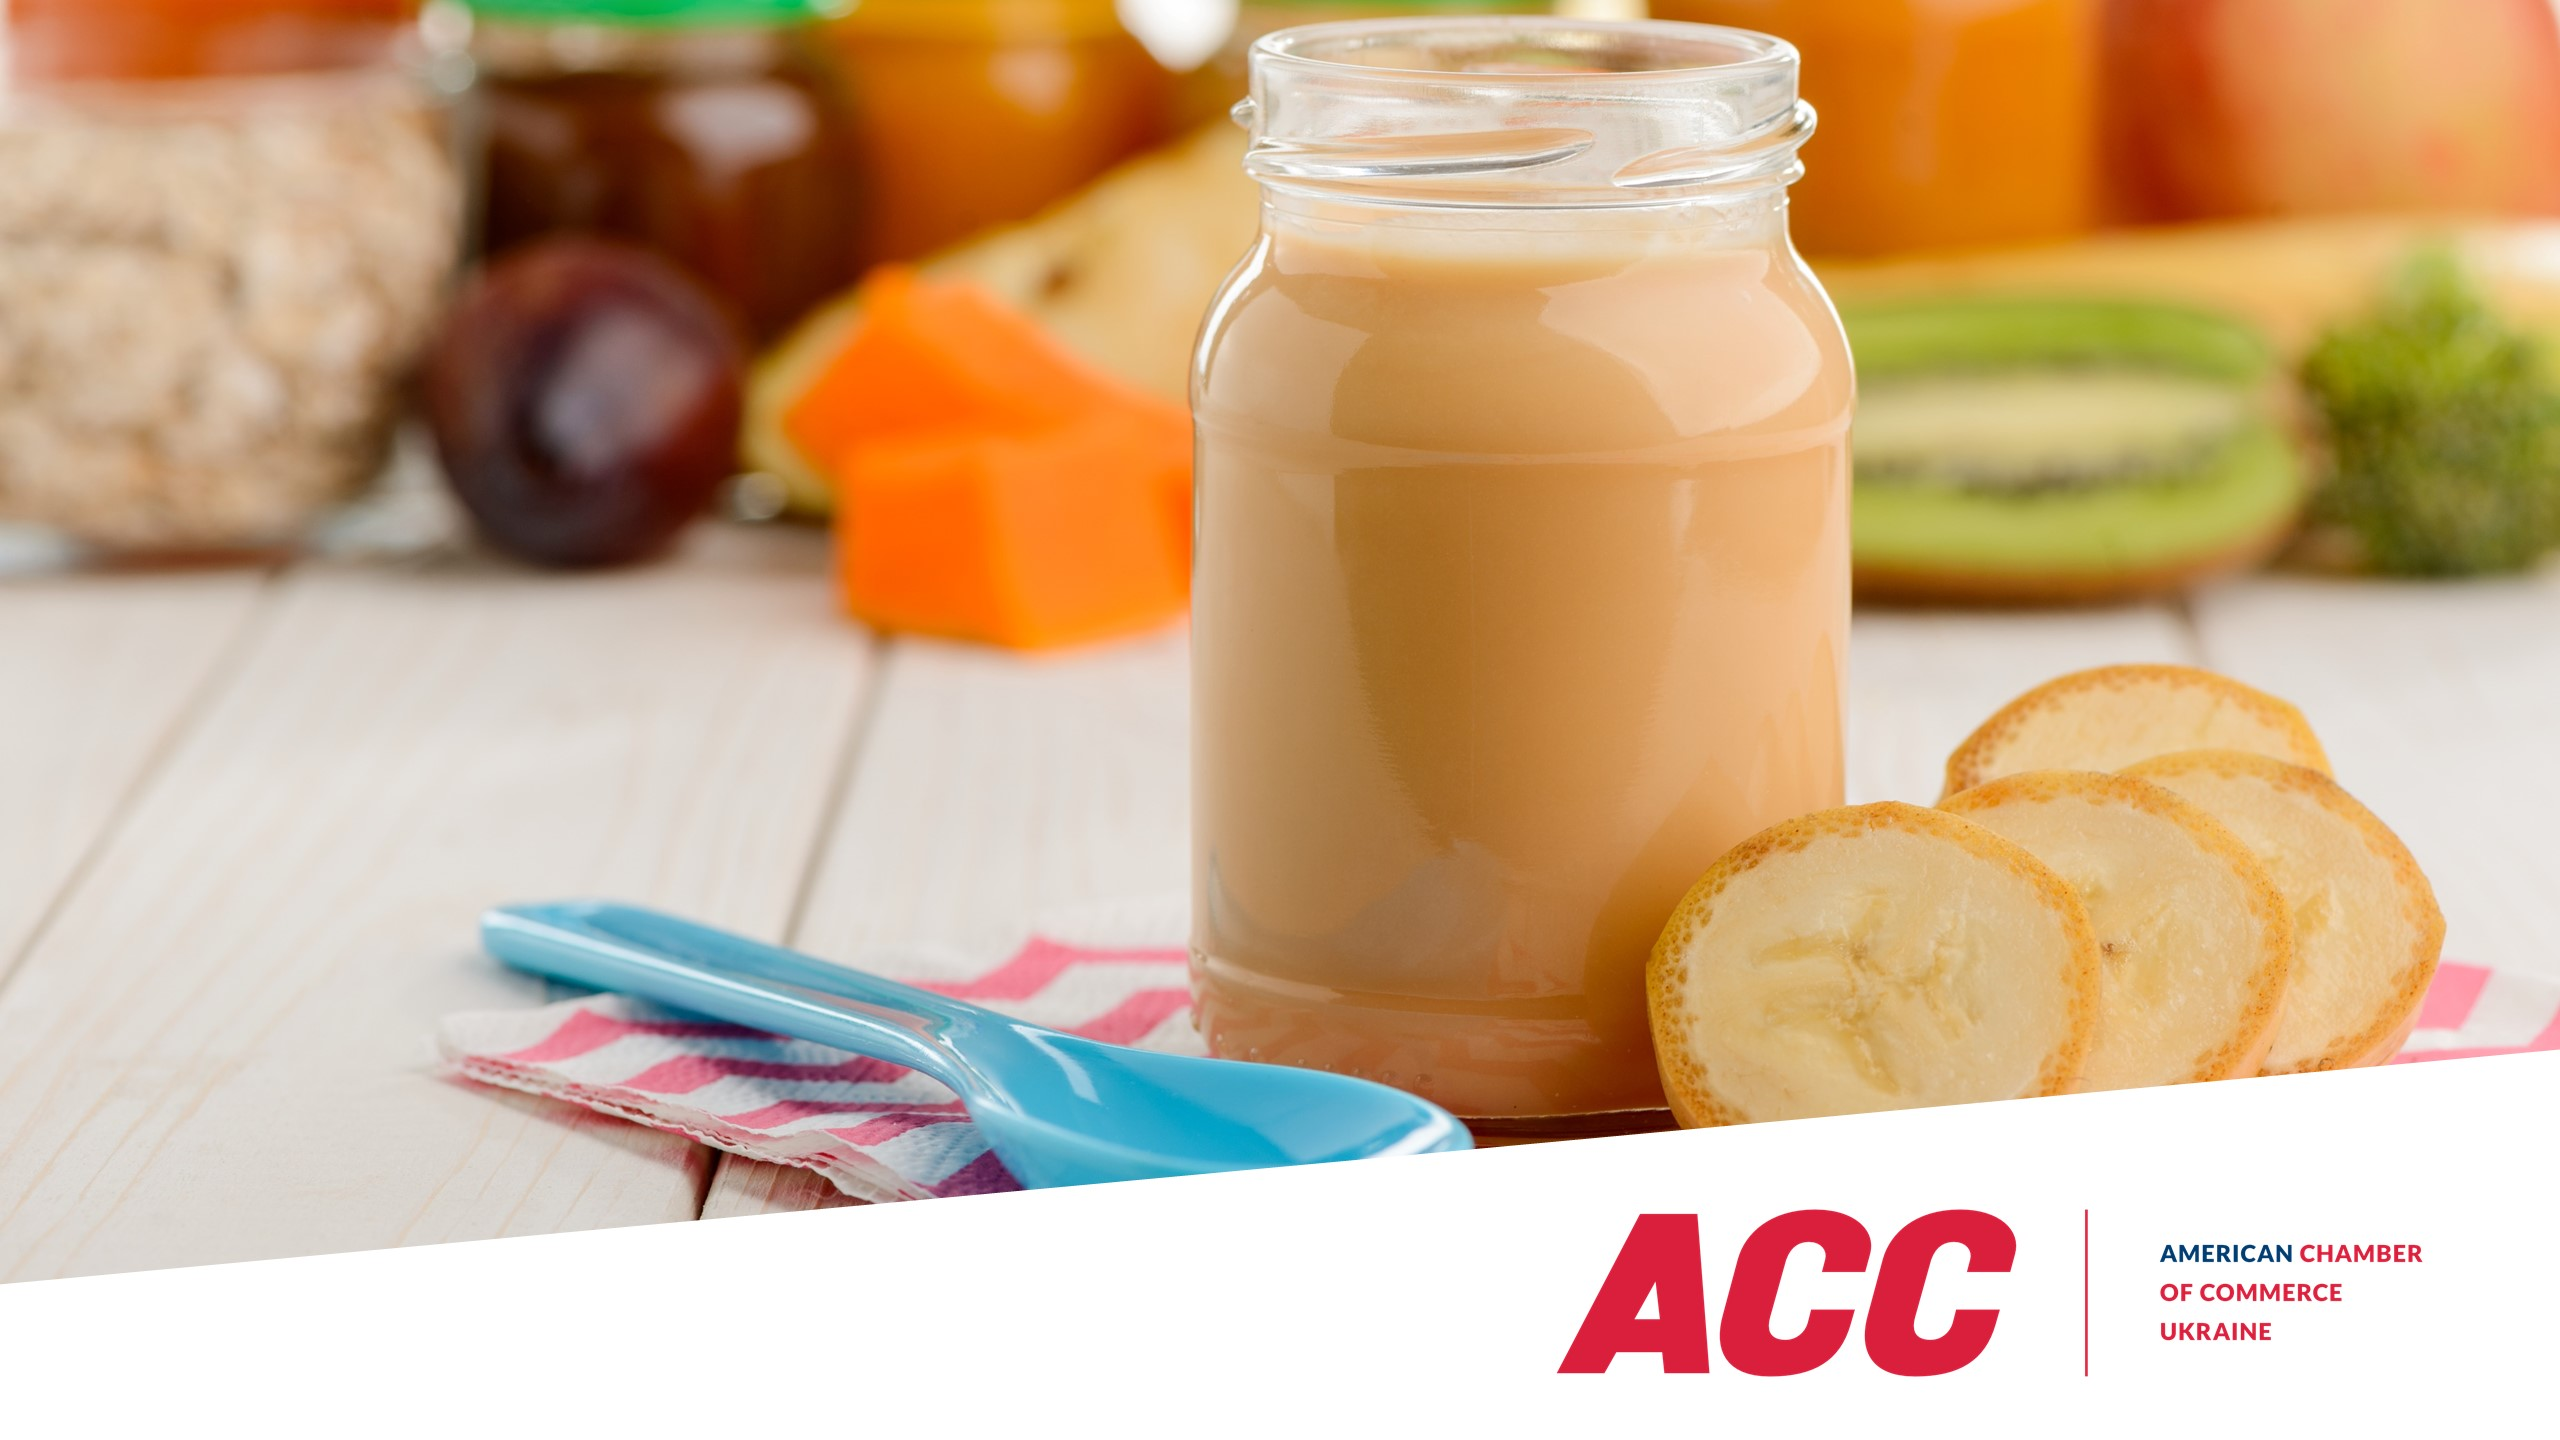 Policy Progress: Parliament Passed Draft Law #4554 regarding Baby Food Regulation in the First Reading